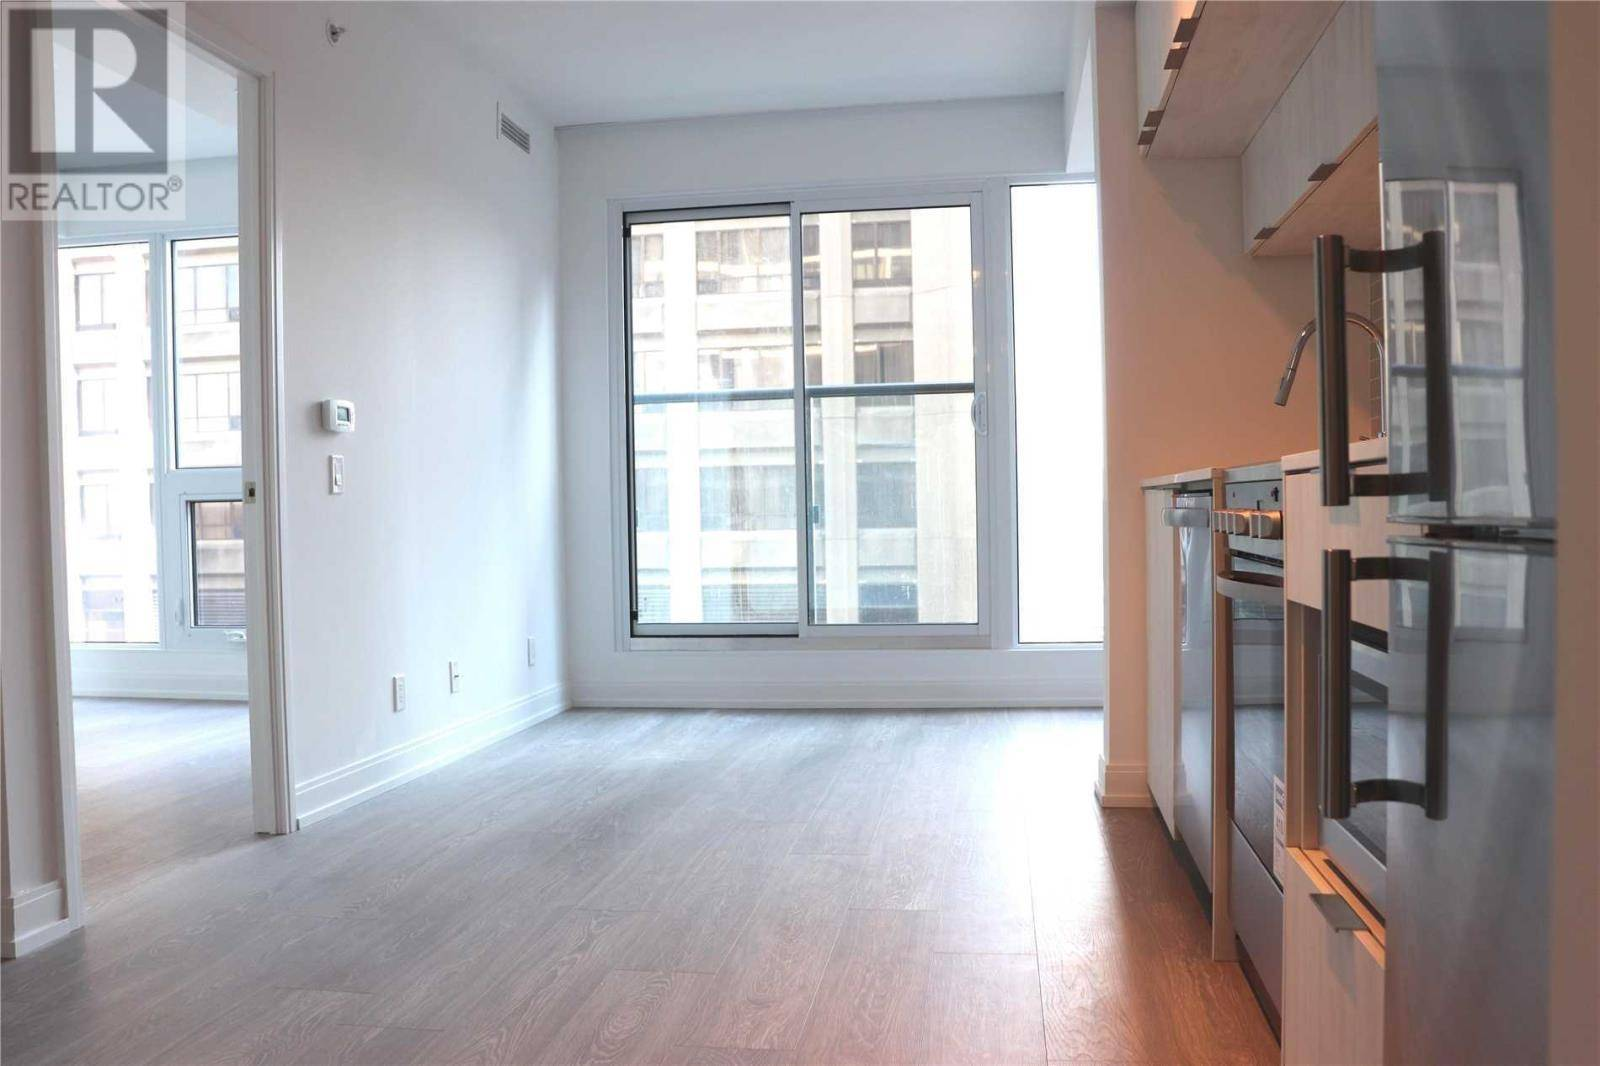 Apartment for rent at 181 Dundas St East Unit 708 Toronto Ontario - MLS: C4687839